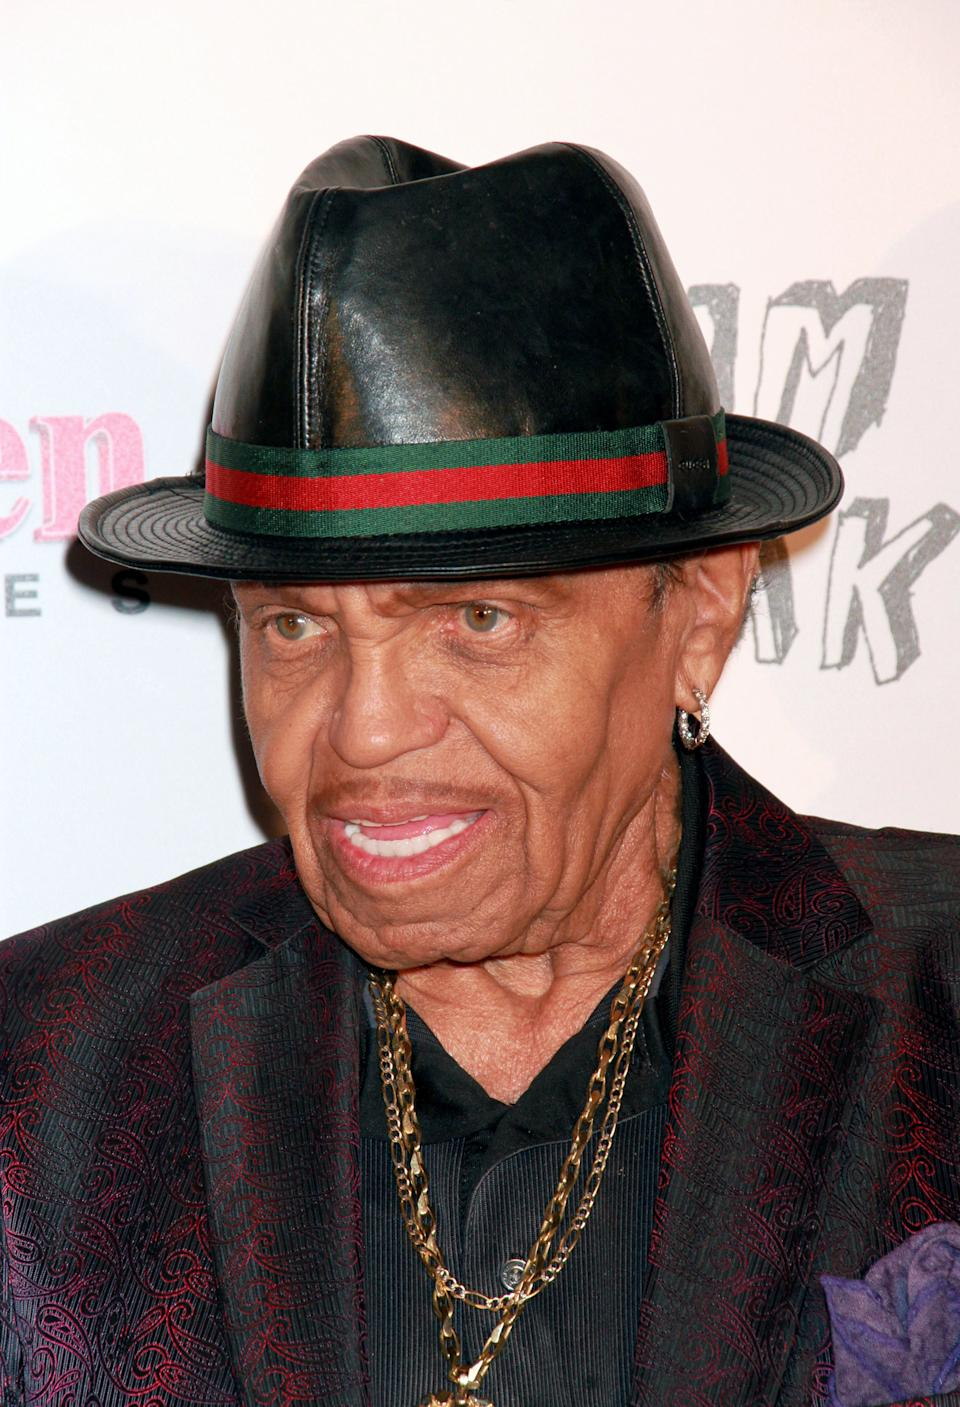 <strong>Joe Jackson</strong><br /><strong><i>Musician (b. 1928)</i></strong><br /><br />The patriarch of the Jackson family who managed the Jackson 5 and his son Michael Jackson, died aged 89 of pancreatic cancer.